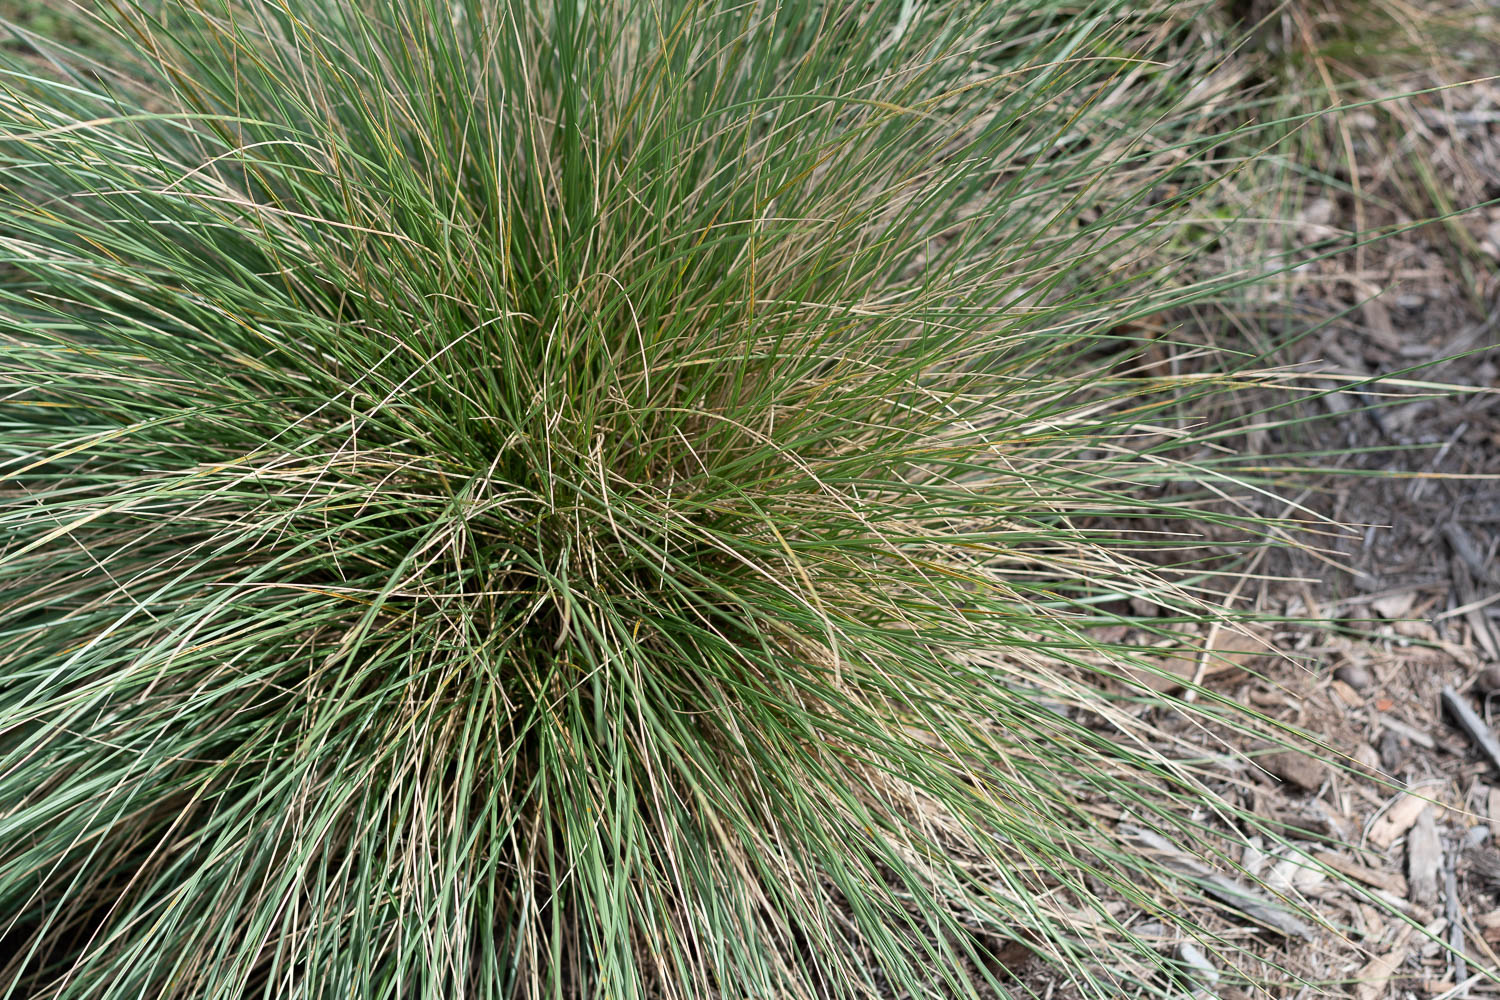 Marie's Fescue - These tall grasses provide a meadow-like vibe. They've grown really large and blow in the wind when they aren't being sat on by neighborhood cats - apparently they make nice feline cushions, too! The grasses can start to look brown towards the end of the season so we trim them back and try to avoid cutting the green parts of the grass. Since I don't want to just cut it off and have it look like a bad haircut, I weasel in and trim the brown grasses by the base. It's a bit of a process but a good podcast helps with the tedious task.